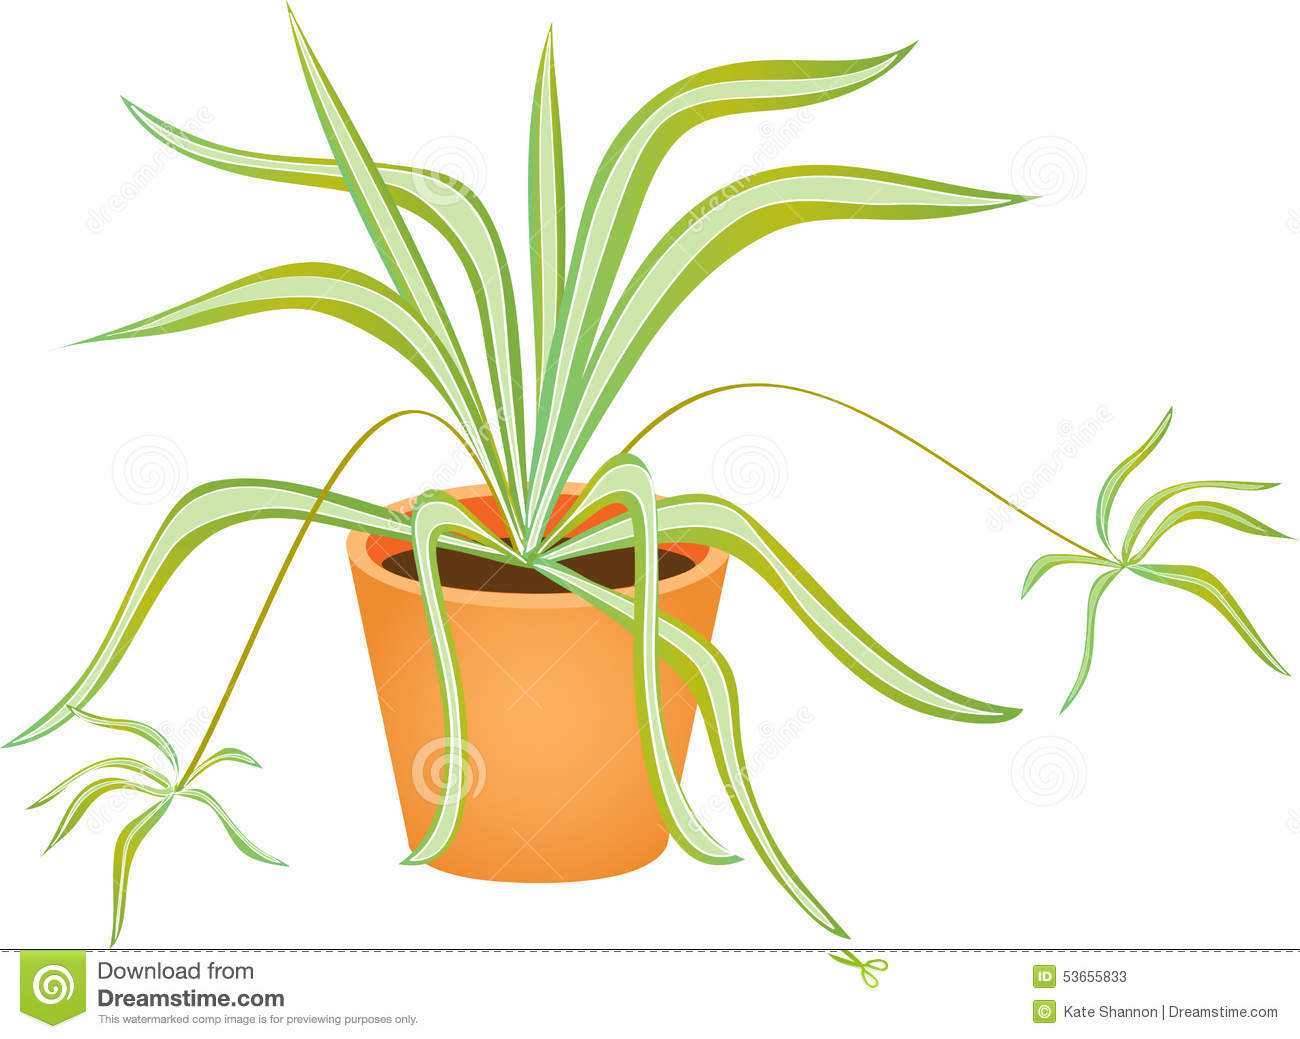 Spider plant clipart #6